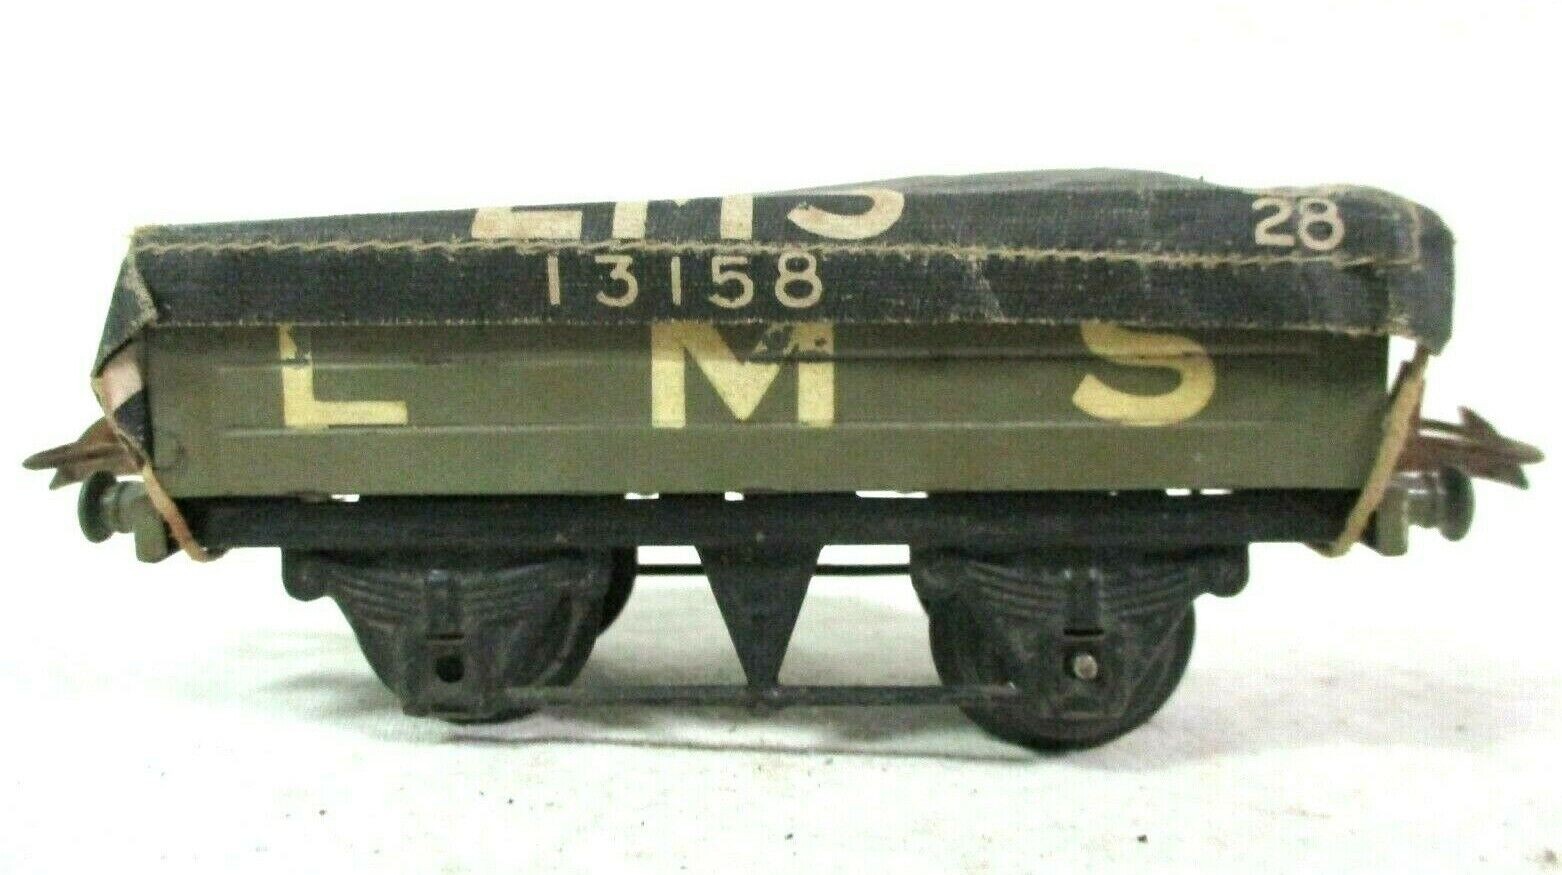 Hornby 13158 LMS Coal Wagon w  Tarpaulin Model Railway Freight Train Car B62-34